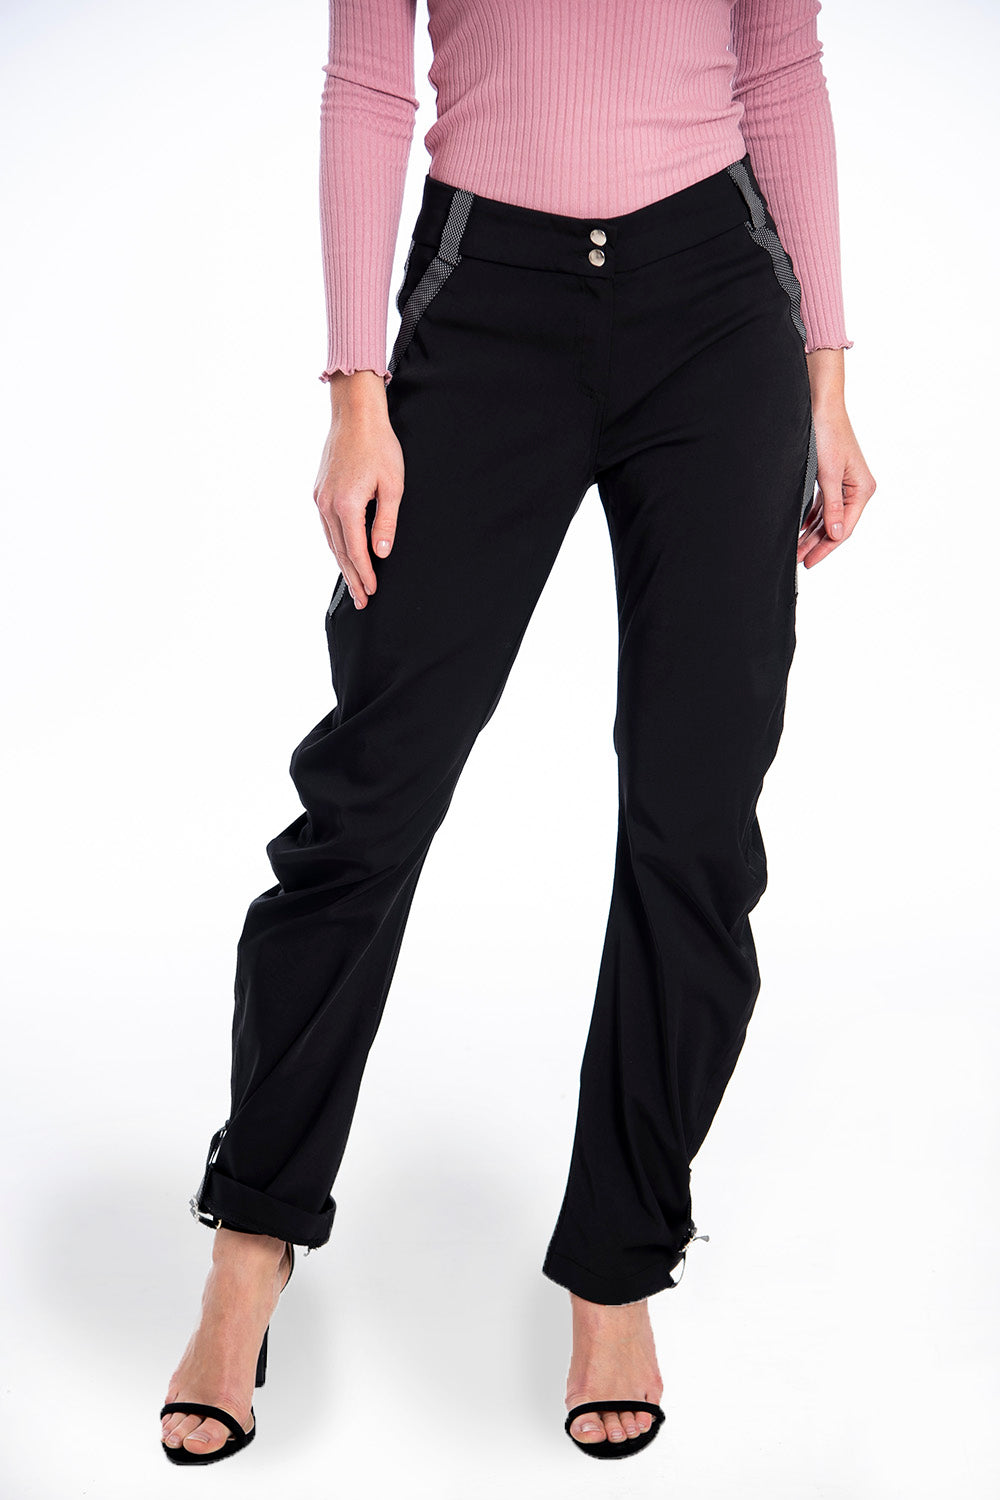 Cargo trousers with buckled bottom details